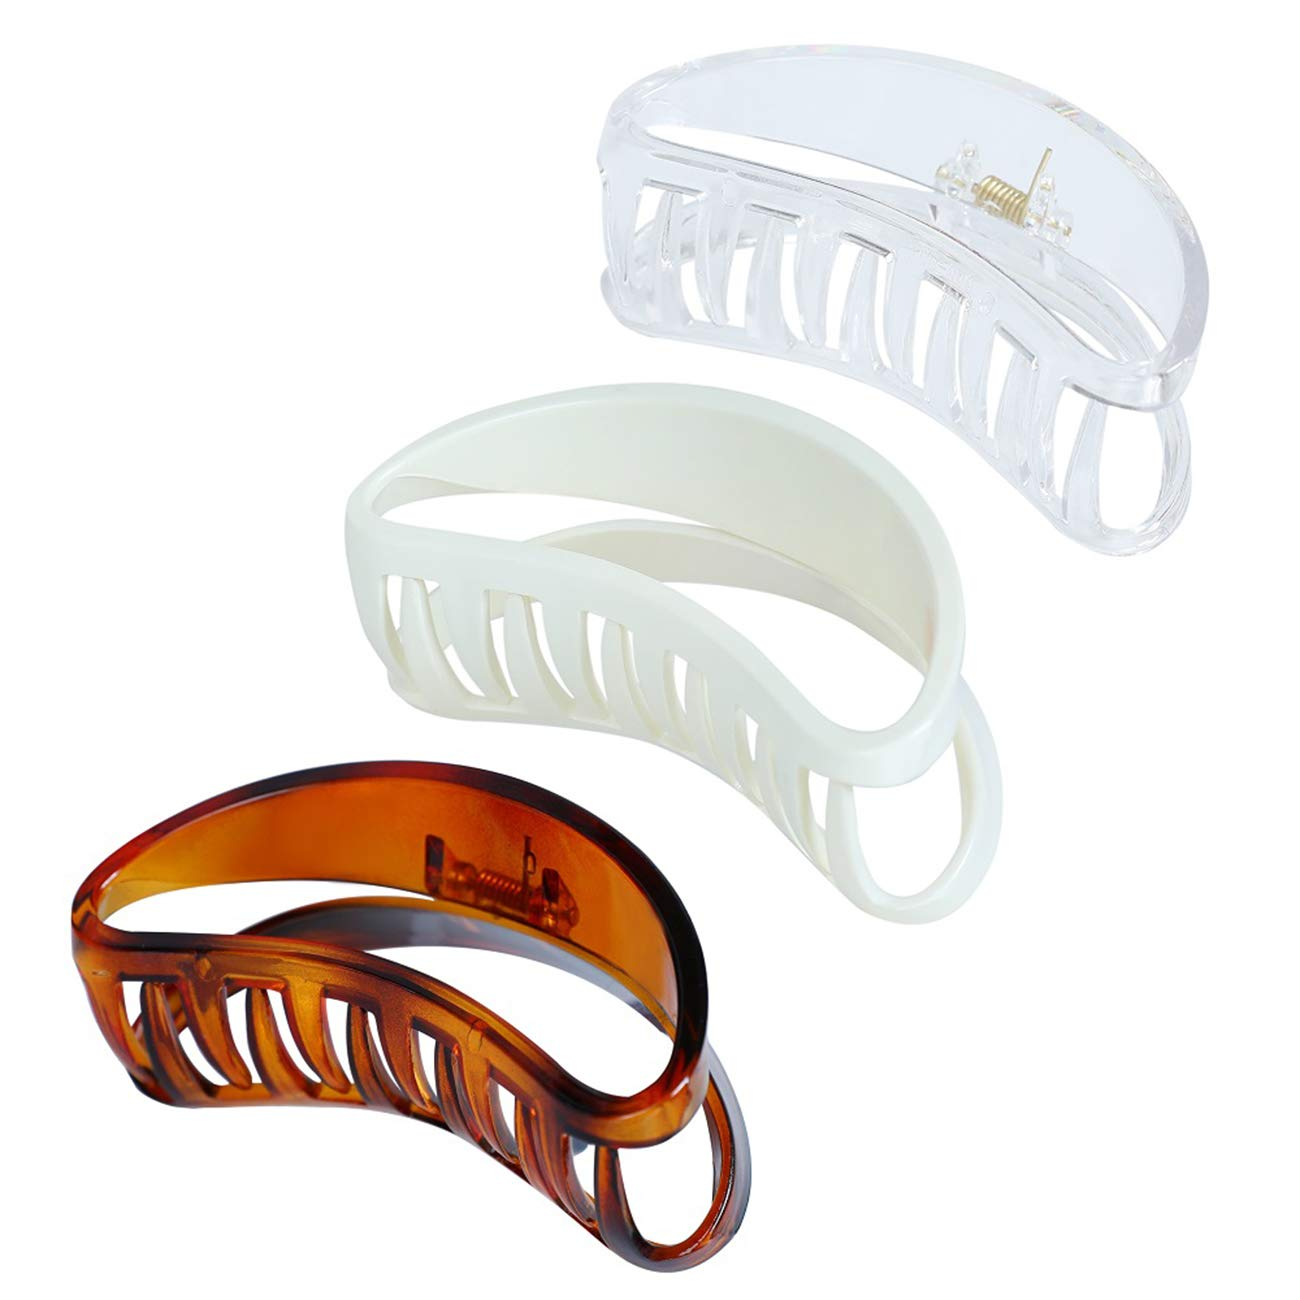 Tocess Big Hair Claw Clips, 3.8 Inch Plastic Hair Claw Clips and Hair Jaw Clips for Women and Girls (Shape D Claw Clips)